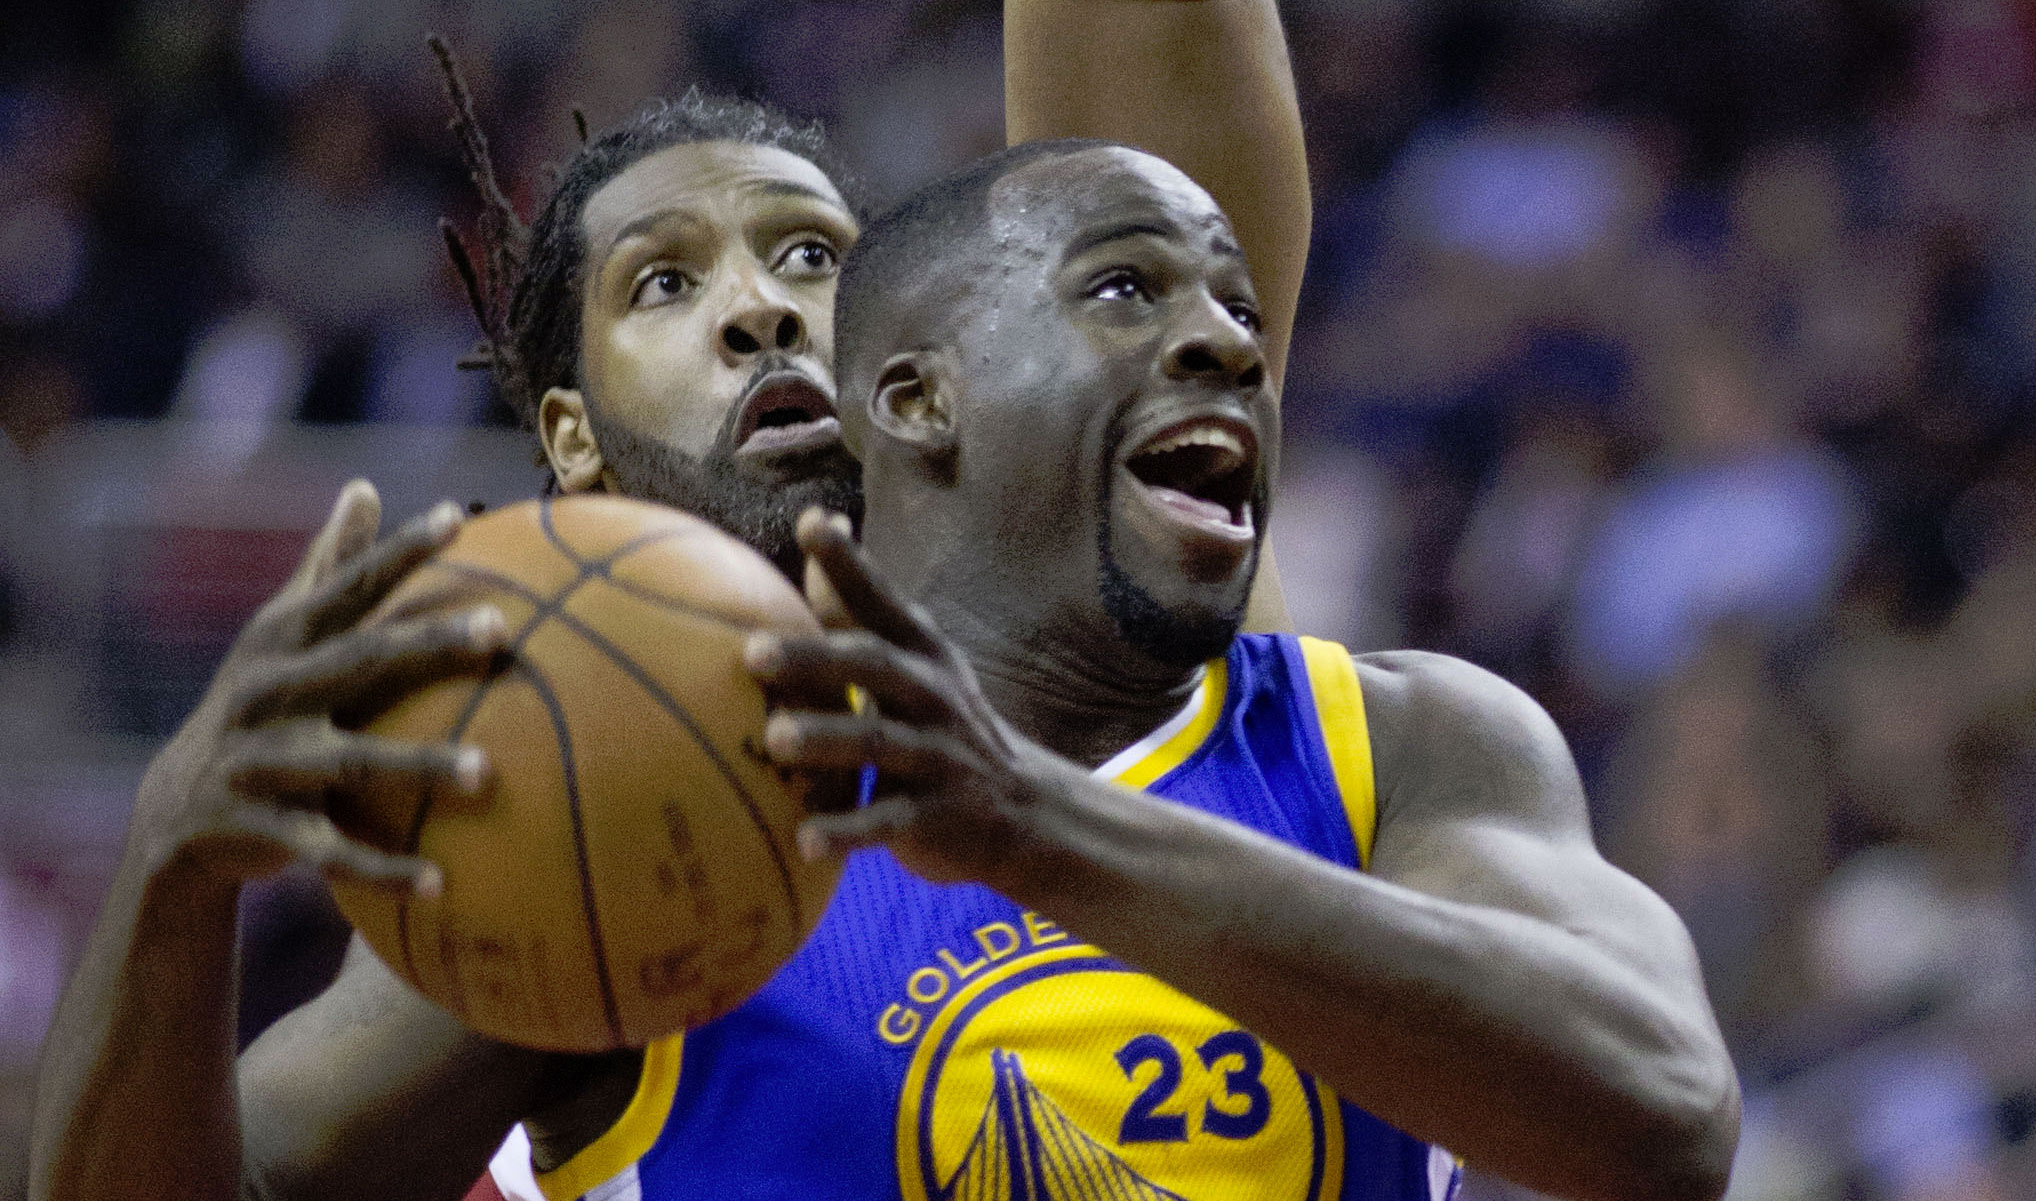 Graphic Snapchat post is latest misstep for Draymond Green